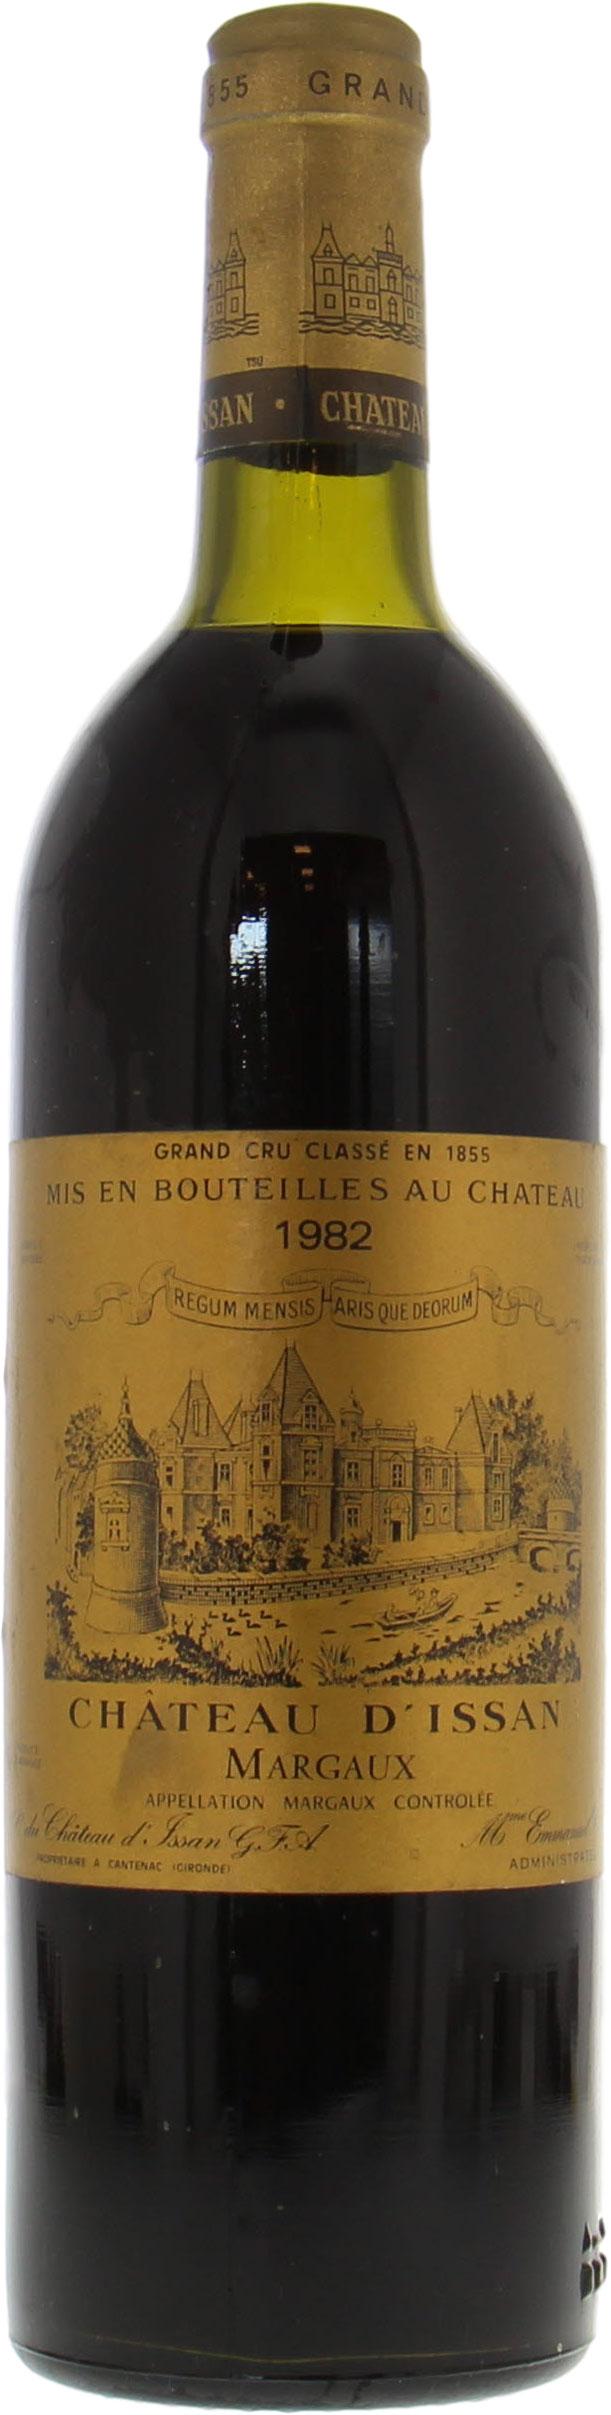 Chateau D'Issan - Chateau D'Issan 1982